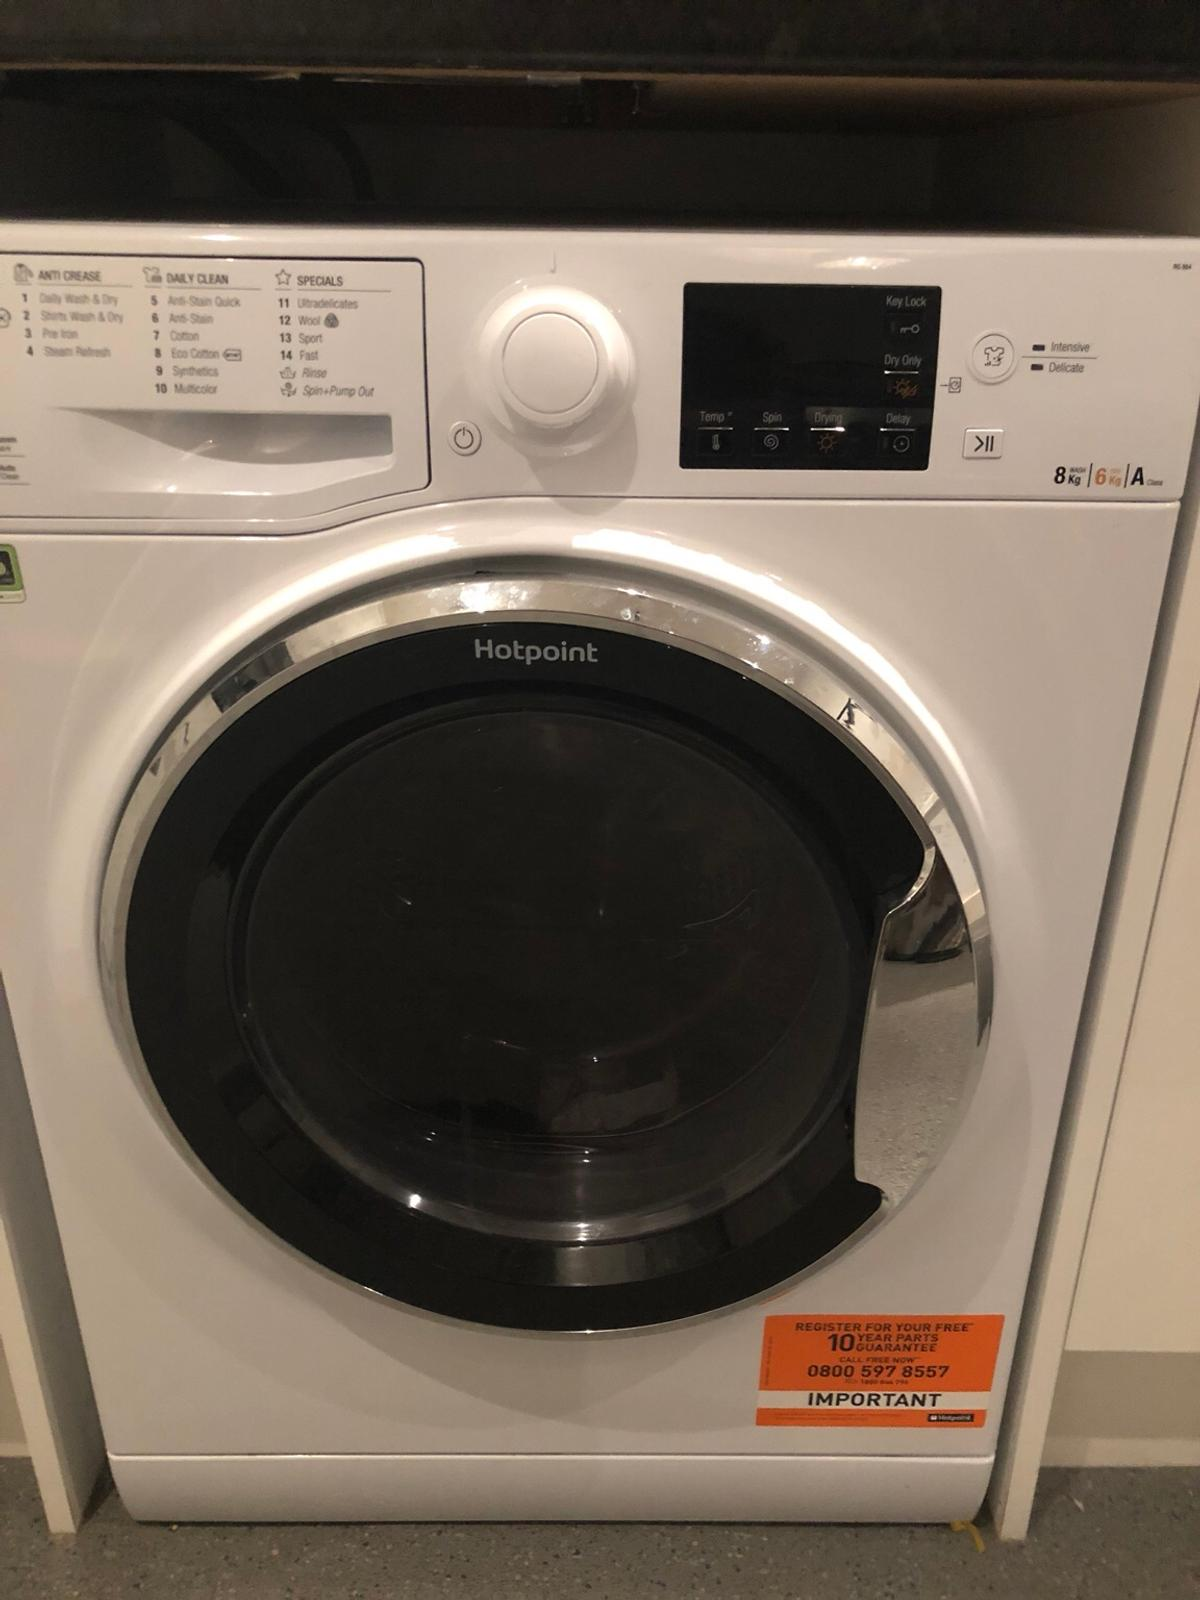 Hotpoint Washer Dryer Rg864 150 In Se15 London For 150 00 For Sale Shpock